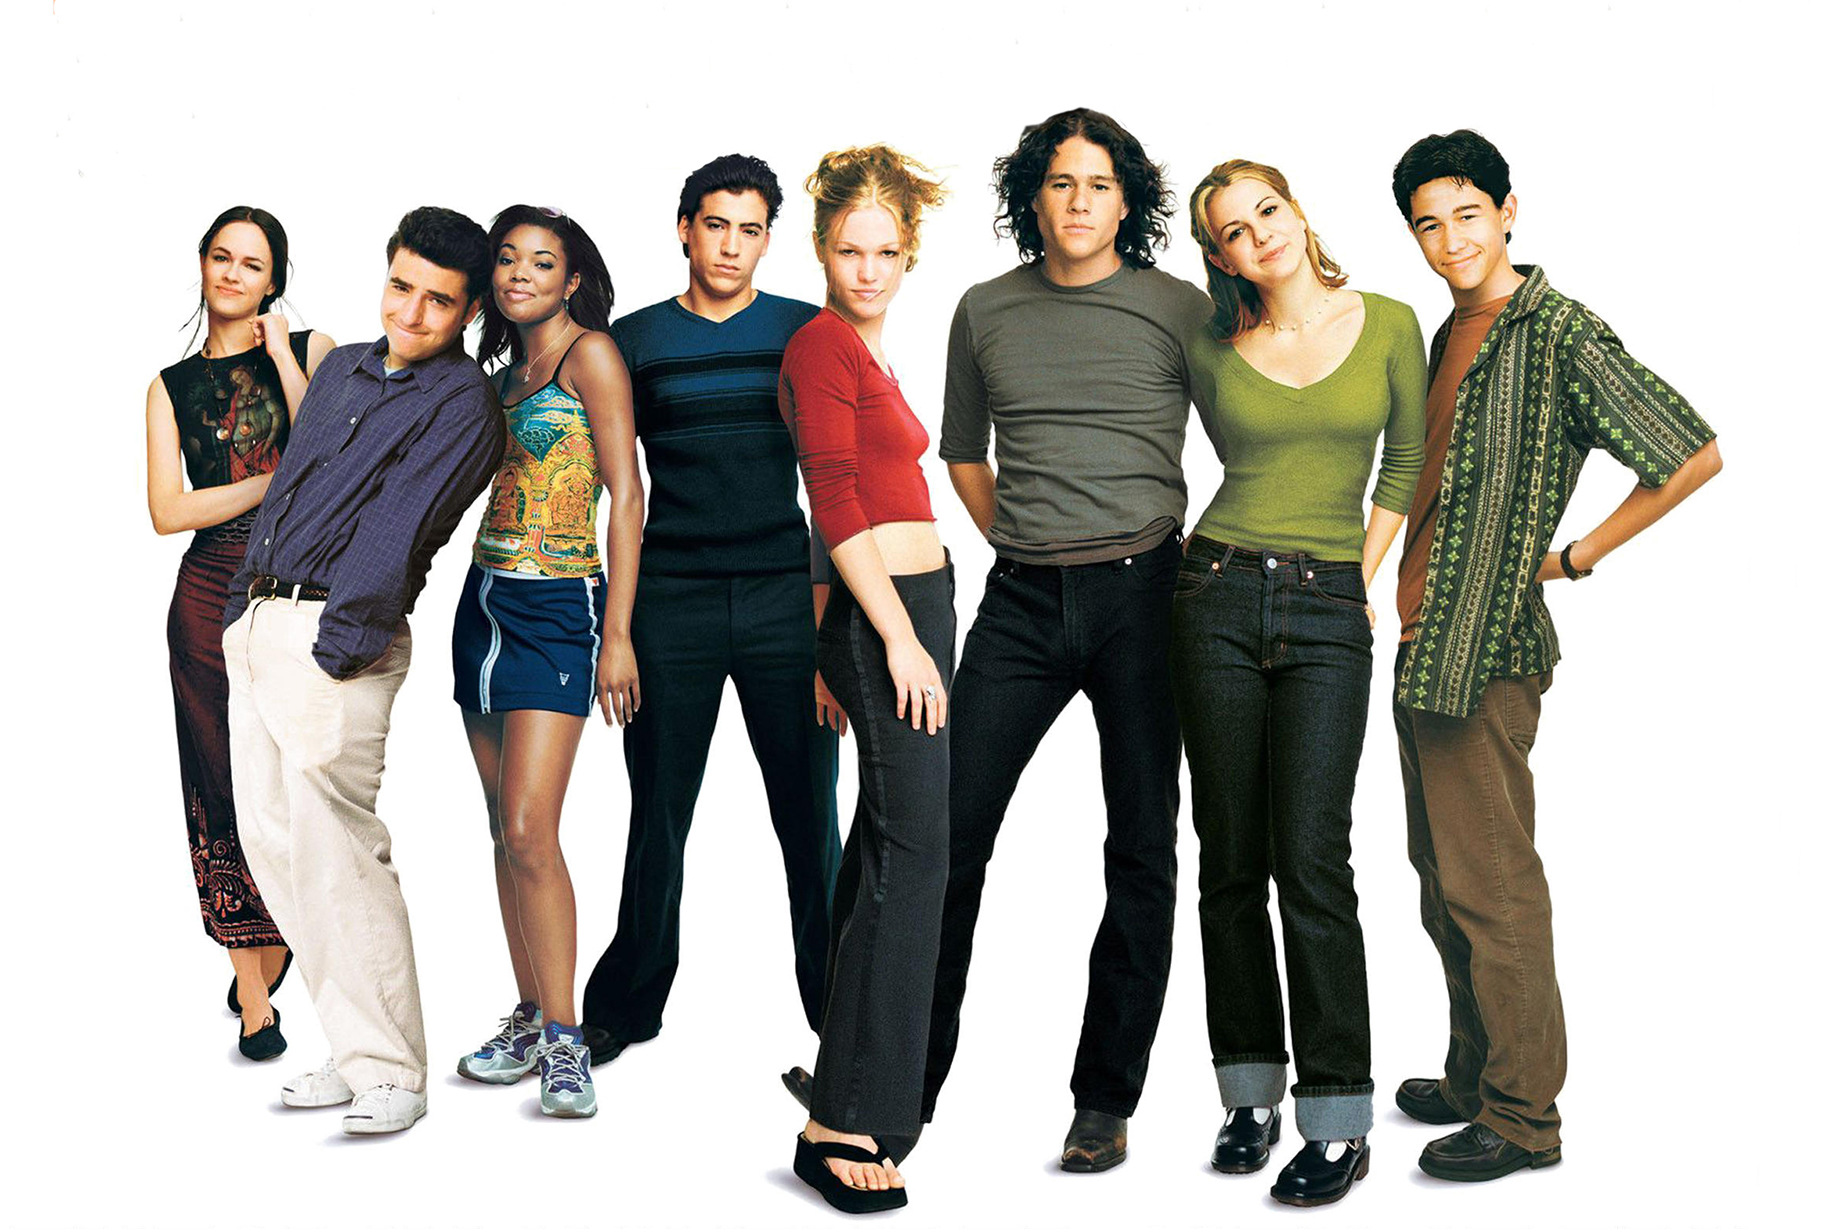 10 Things I Hate About You – Golden Age Cinema and Bar